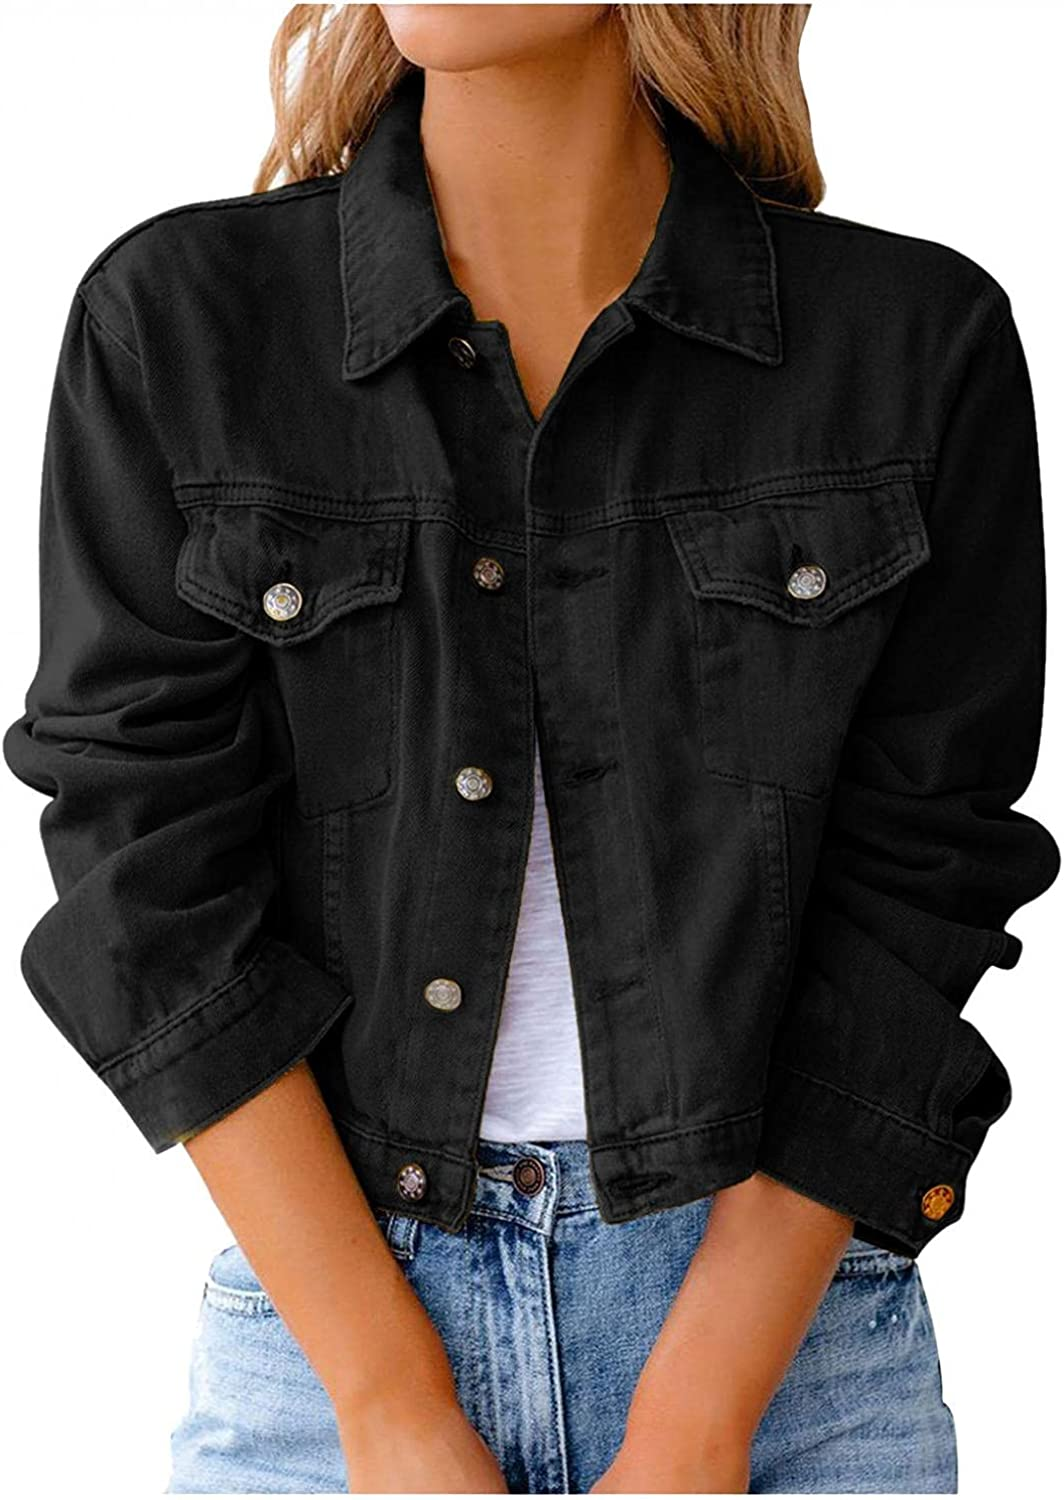 Womens Denim Jackets Vintage Fashion Washed Distressed Cropped Jean Jacket Button Turndown Girls Short Coats Outerwear